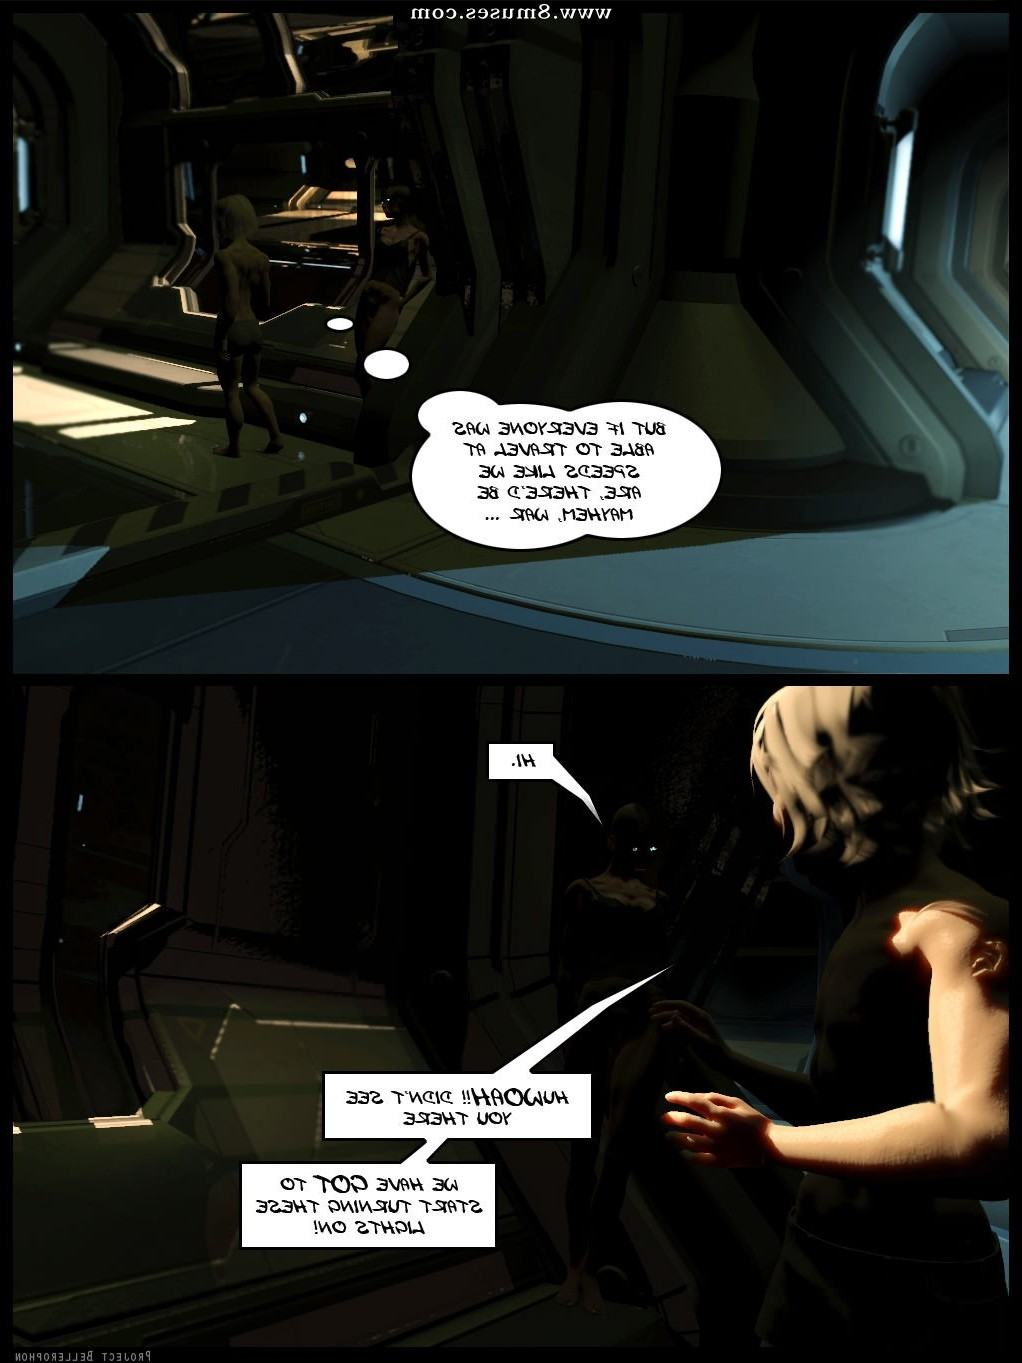 project-bellerophon-comics/18-Shadows-and-Dust 18-Shadows_and_Dust__8muses_-_Sex_and_Porn_Comics_54.jpg